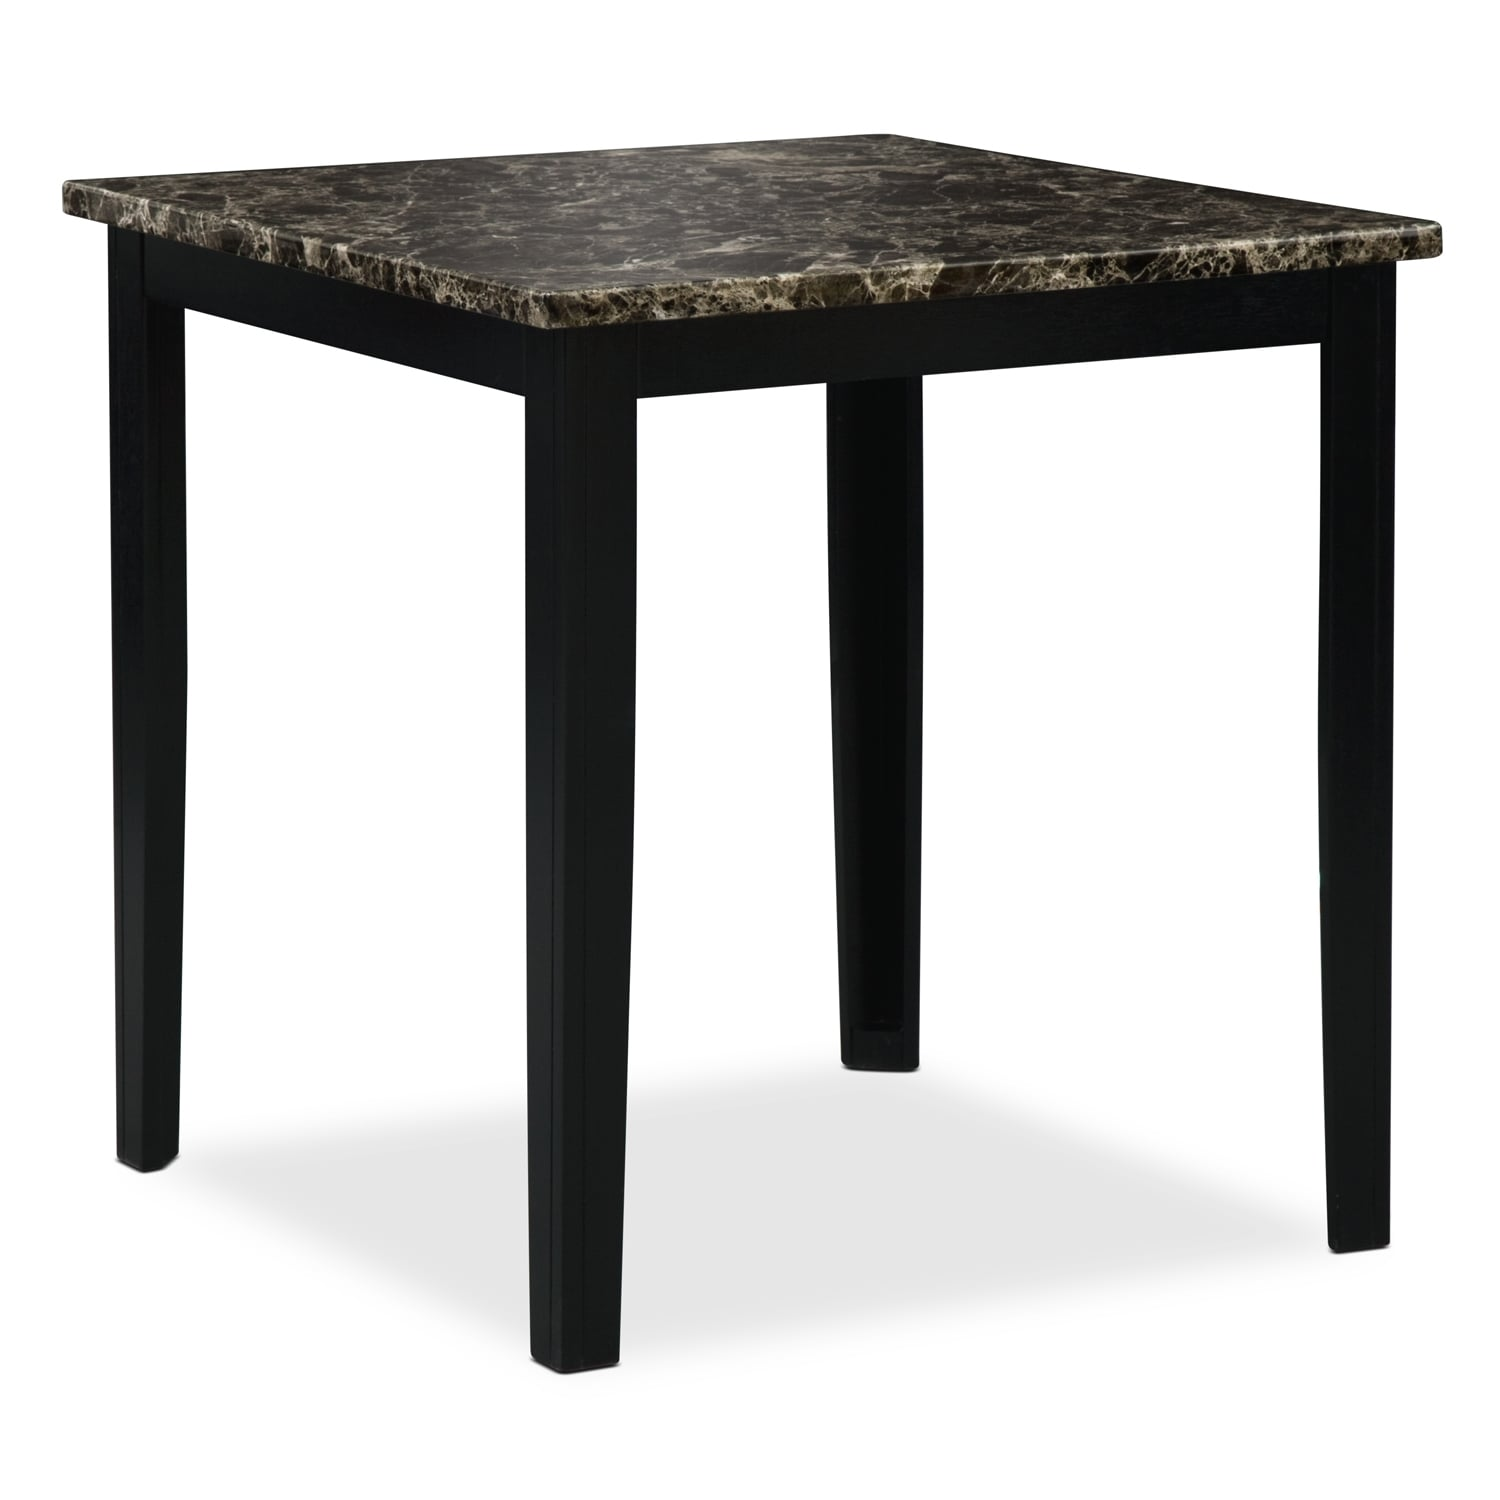 Shadow Counter Height Dining Table Black Value City  : 290305 from www.valuecityfurniture.com size 1500 x 1500 jpeg 363kB